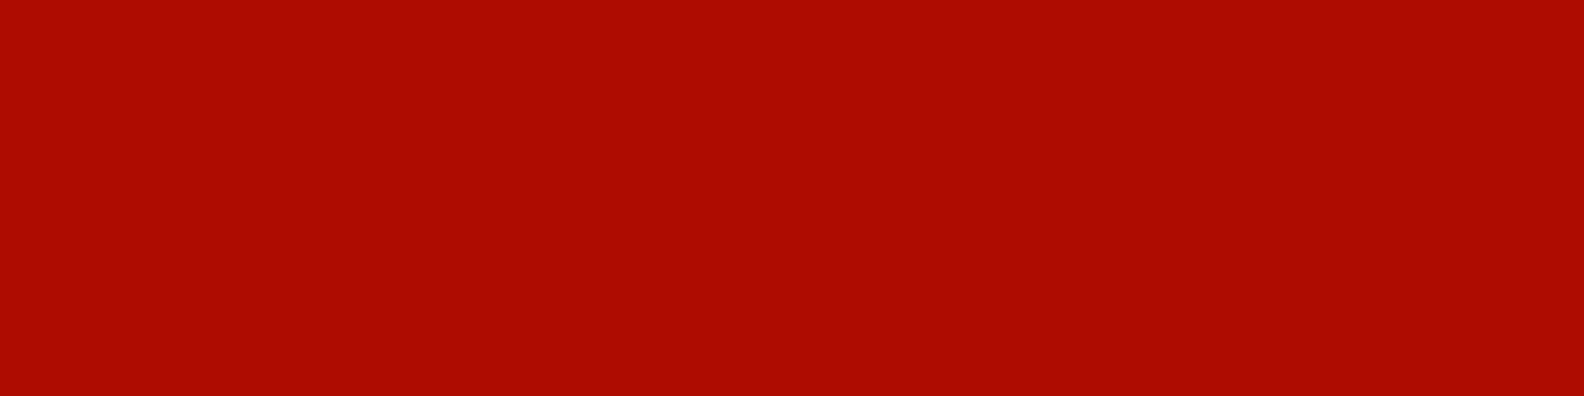 1584x396 Mordant Red 19 Solid Color Background